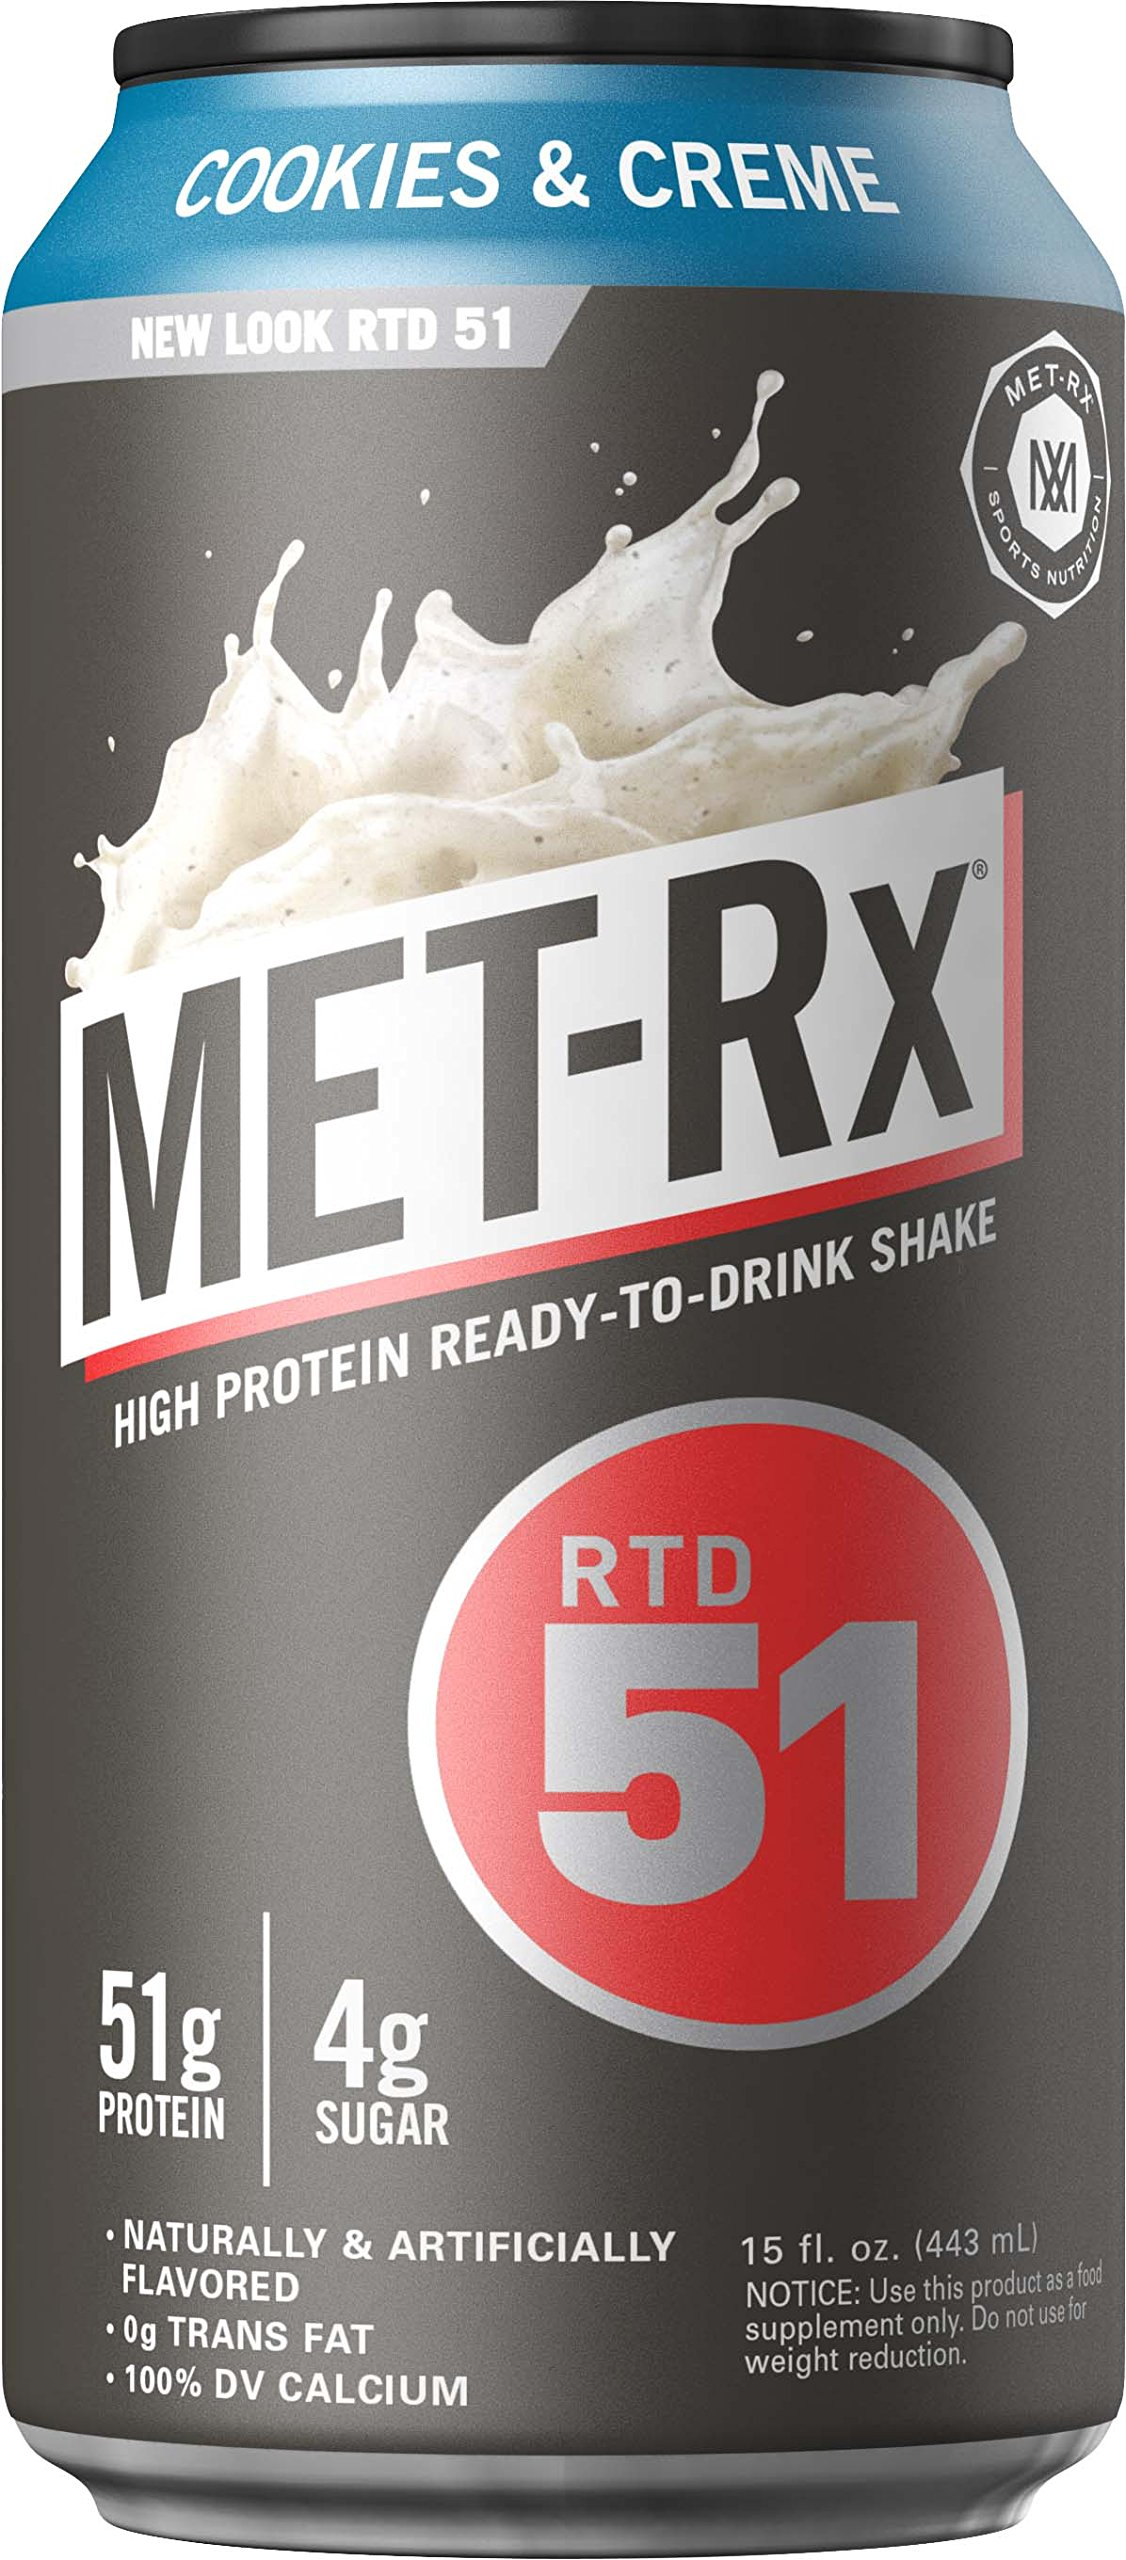 MET-Rx RTD 51 Protein Shake, Ready to Drink and Convenient for Meal Replacement, Low Carb, Cookies and Creme, 15 oz, 12 Count by MET-Rx